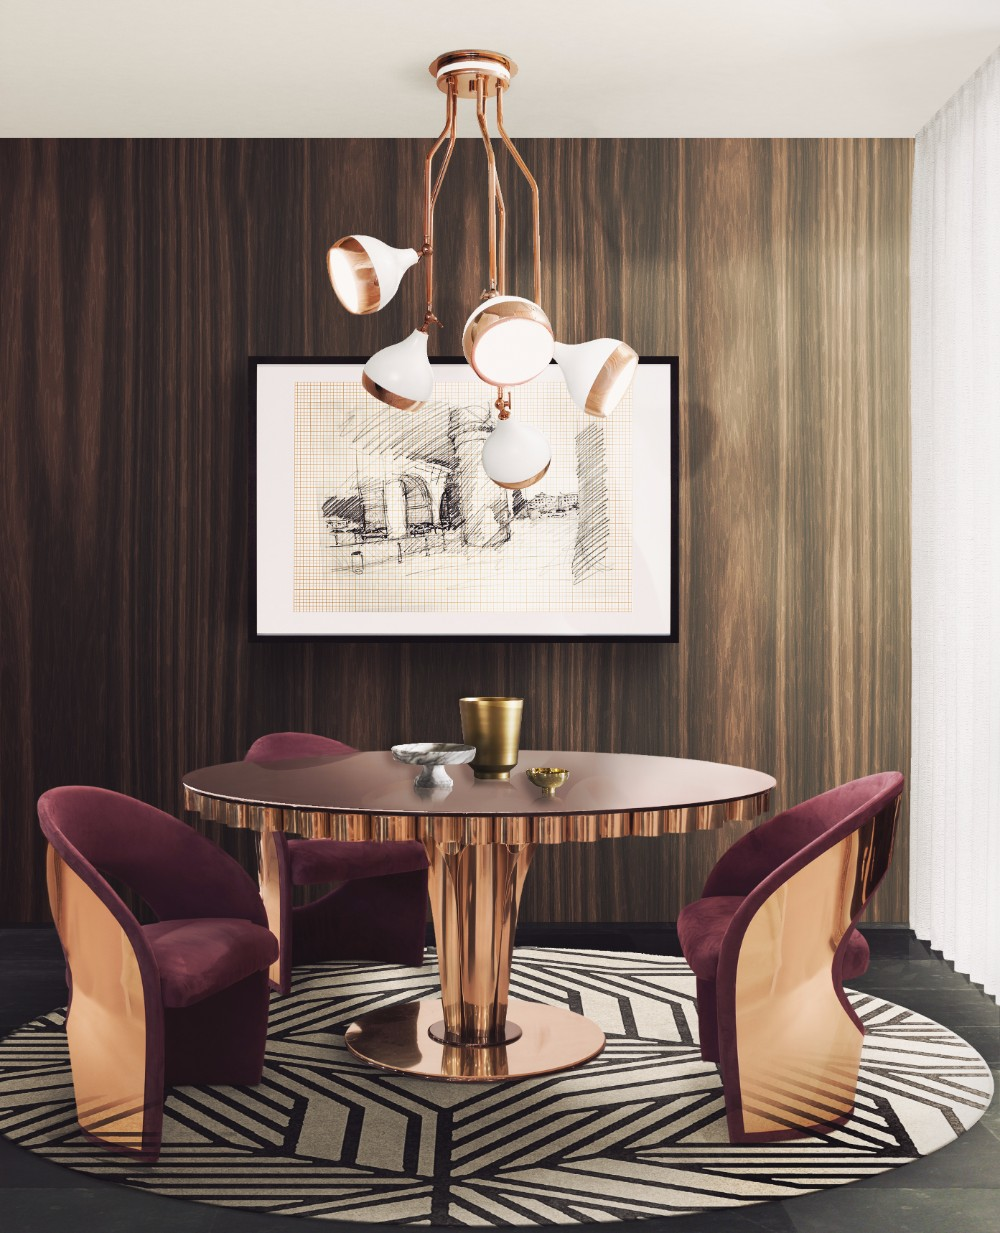 The Ultimate Dining Room Decor Solutions for Your Fall Decor!